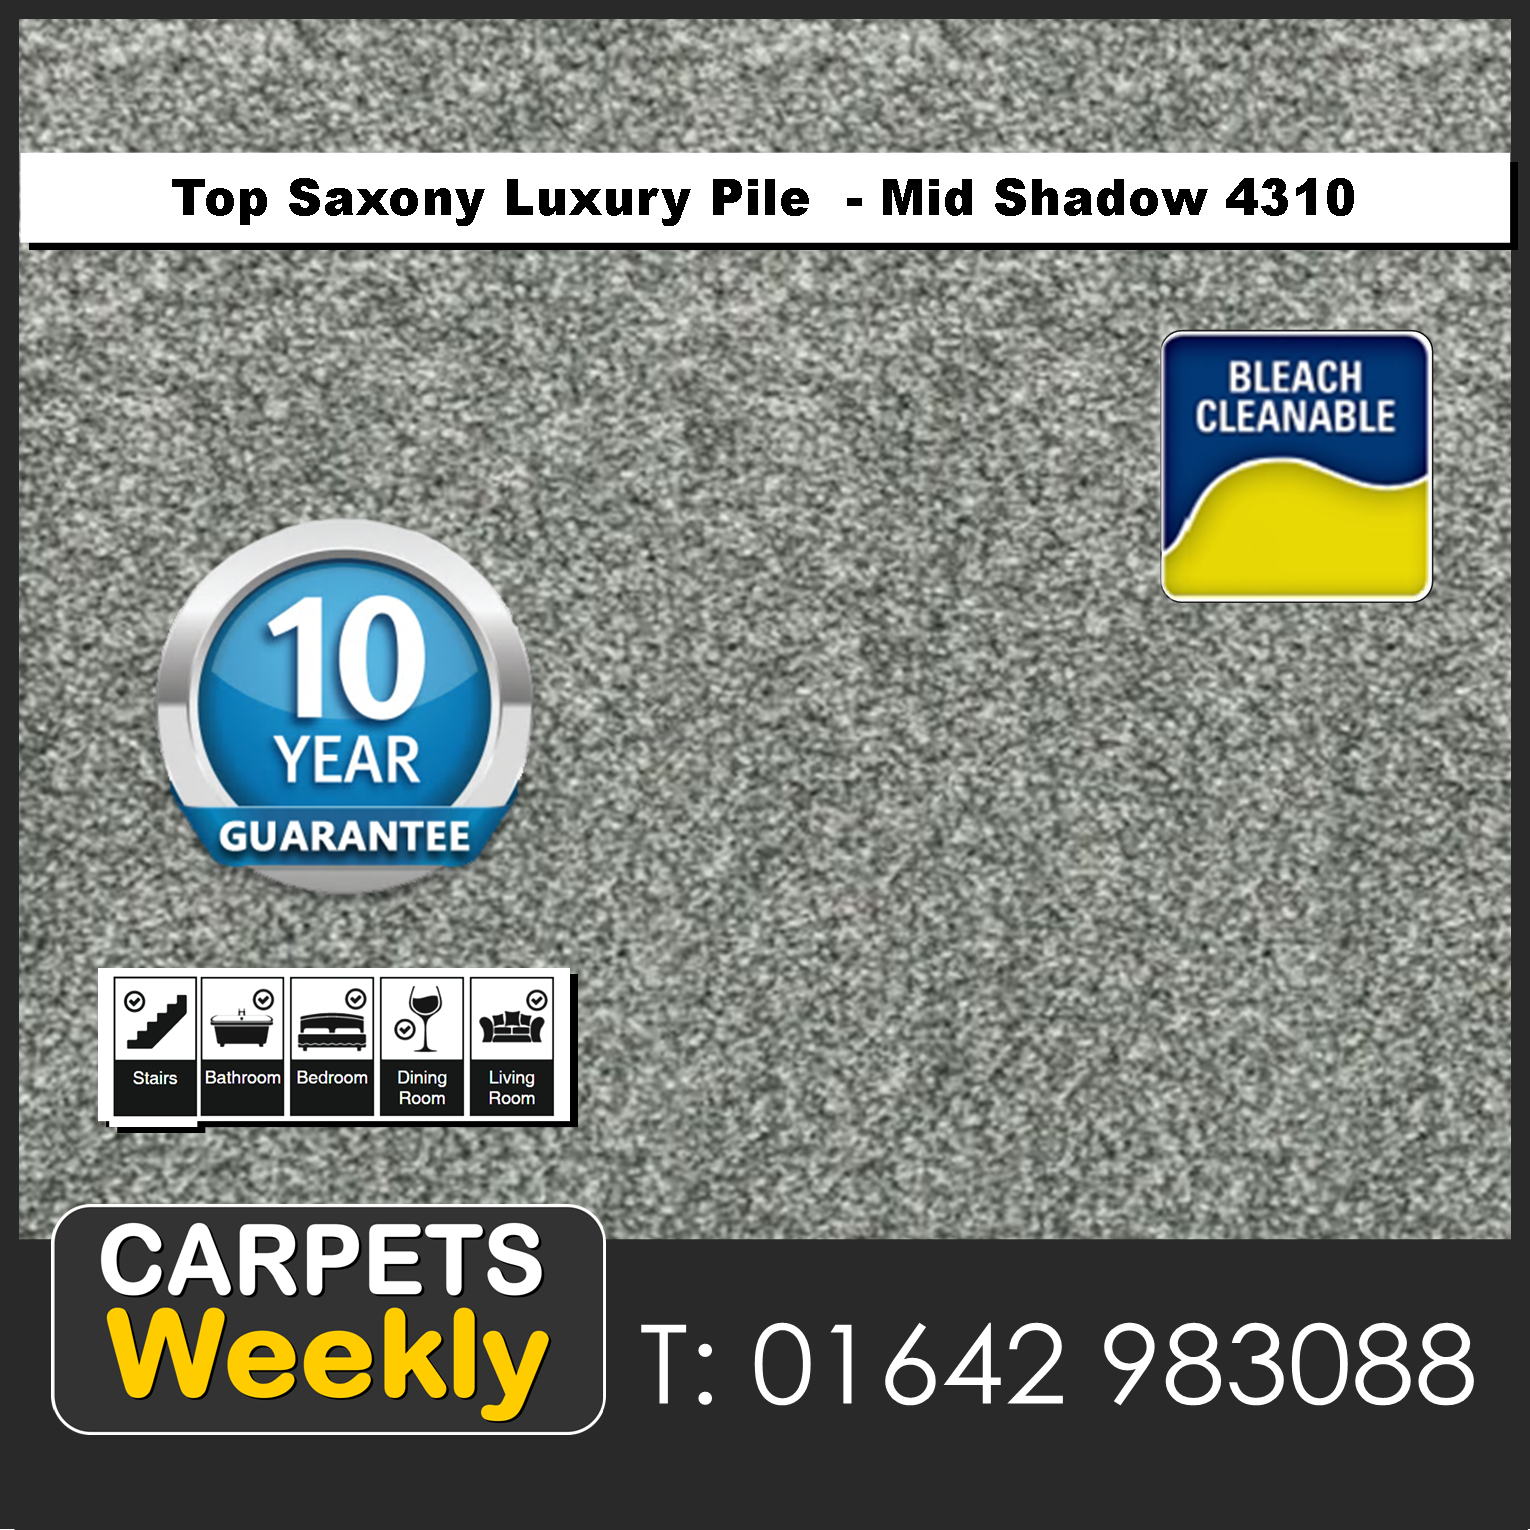 Top Saxony Mid Shadow - 4310 Carpet. Carpets Weekly